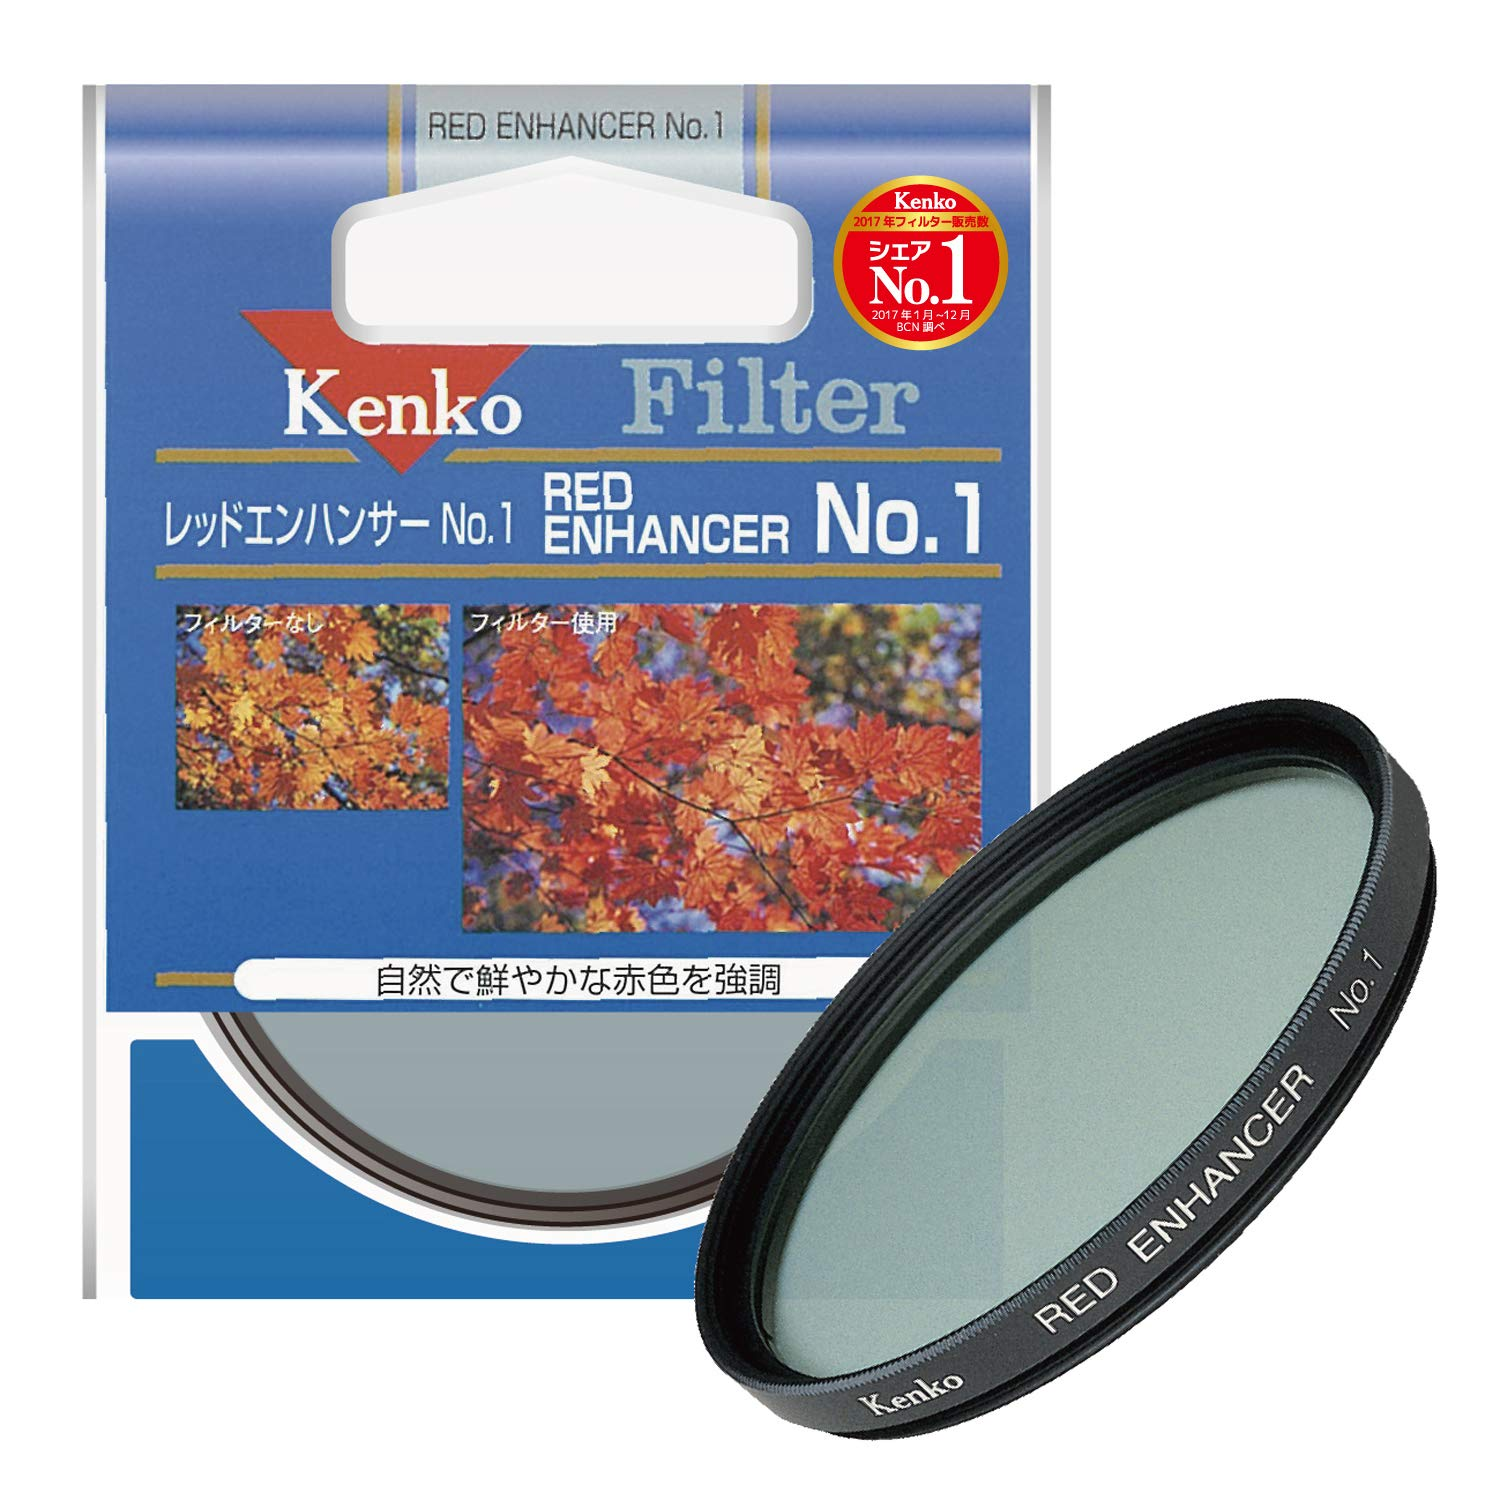 Kenko 72mm Red Enhancer No.1 Camera Lens Filters by Kenko